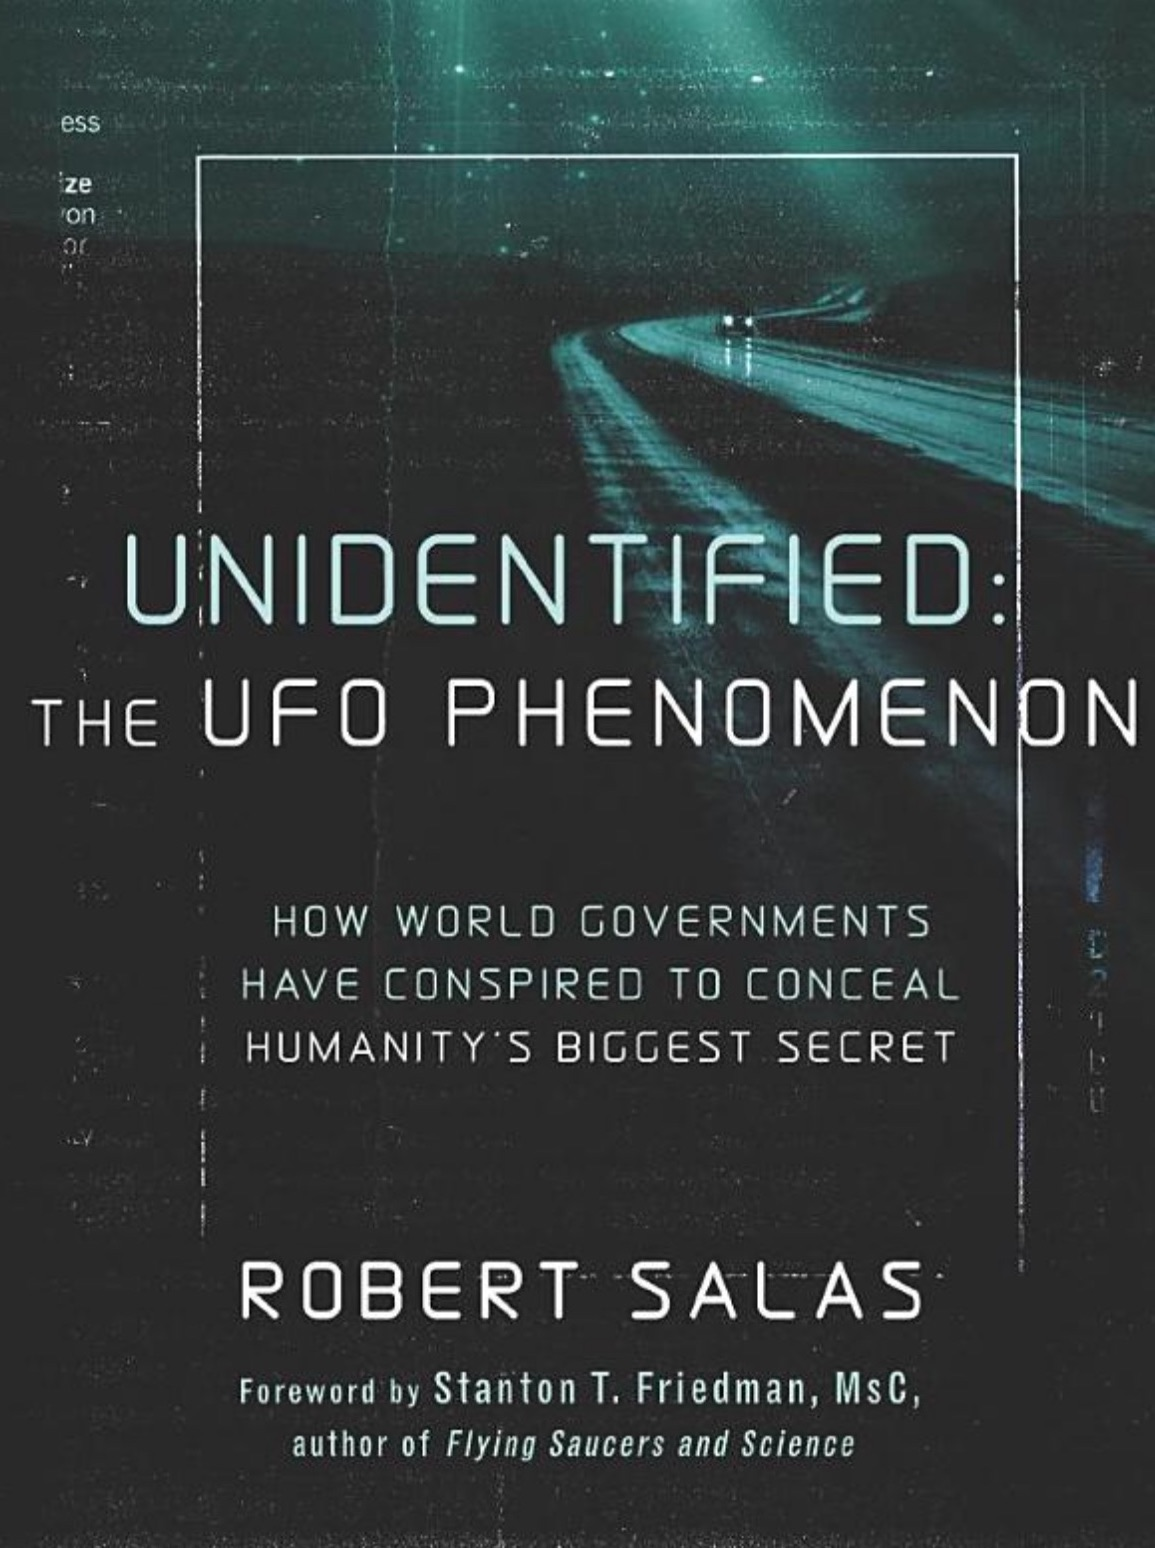 UFO Secrecy with Robert Salas #84